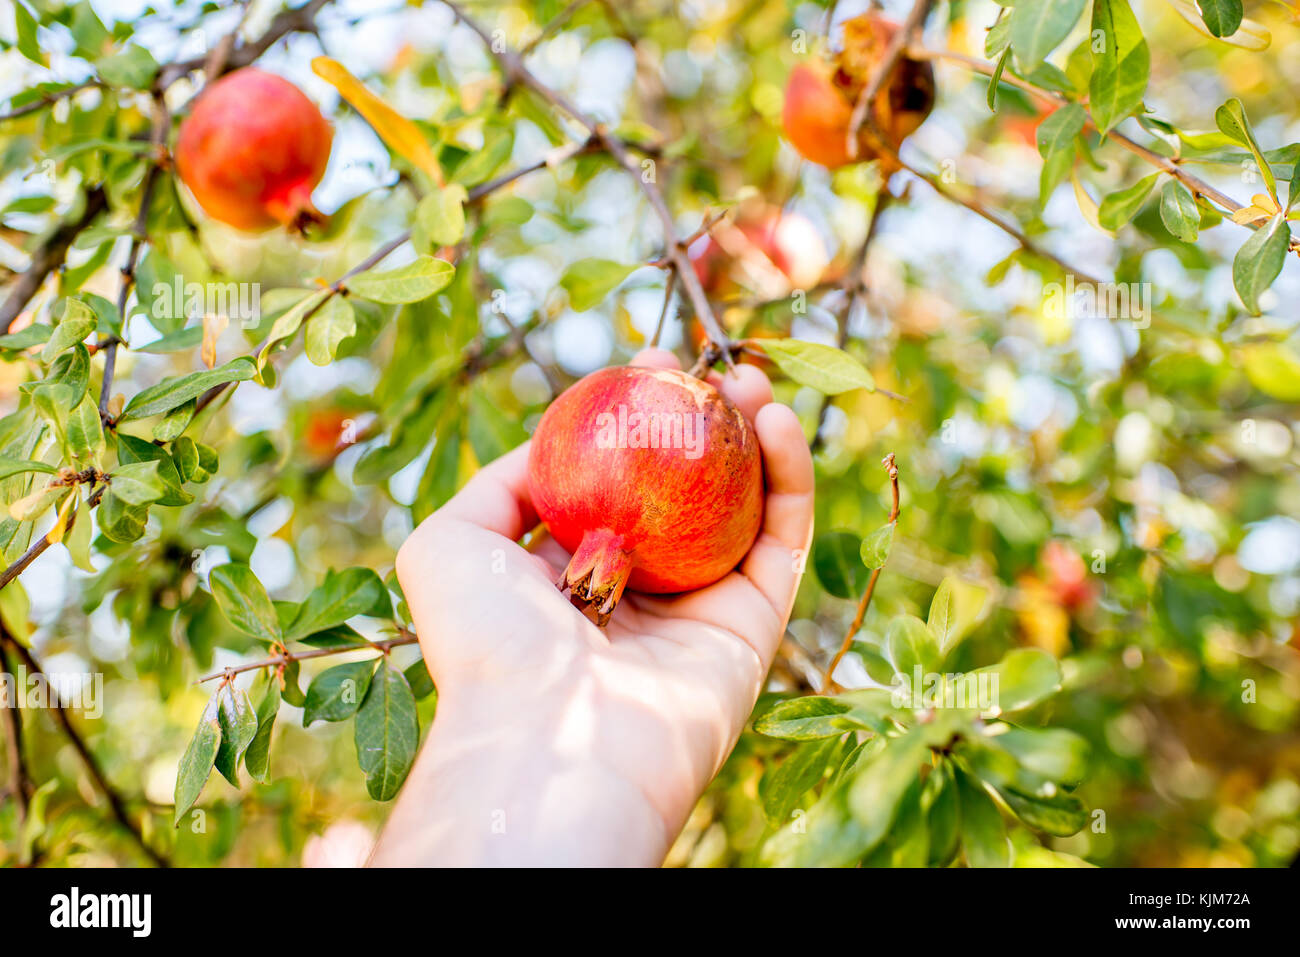 Pomegranate fruit on the tree - Stock Image